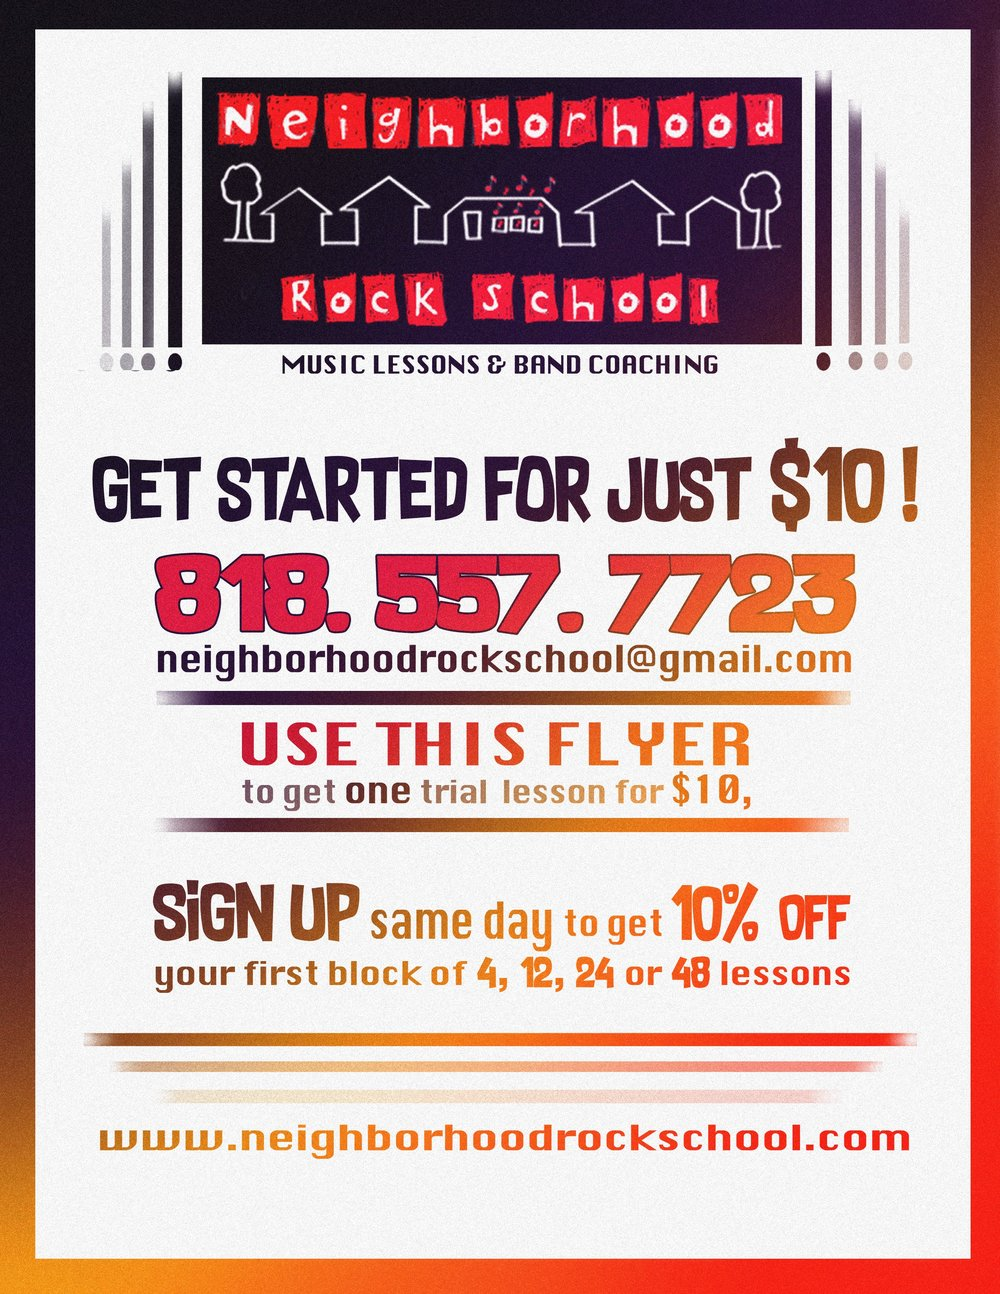 - Try it today for just $10! Sign up the same day to get 10% your first block of 4, 12, 24 or 48 lessons.Call Neighborhood Rock School for more info and come get your trial lesson!